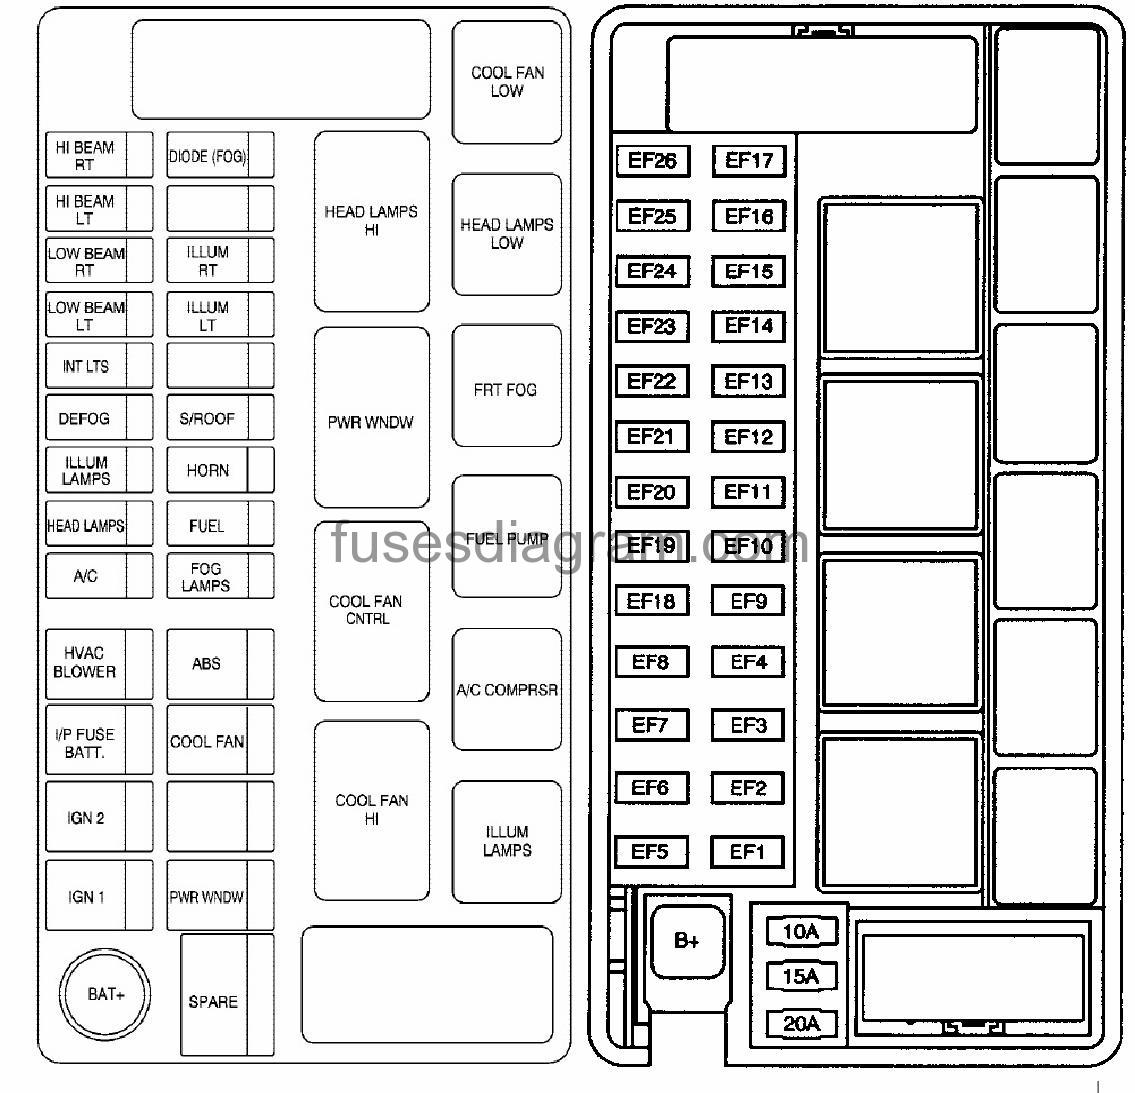 2007 Hhr Fuse Box Wiring Library 2006 Chevrolet Diagram 2004 Chevy Aveo Schematics Diagrams U2022 Rh Seniorlivinguniversity Co 2002 Silverado